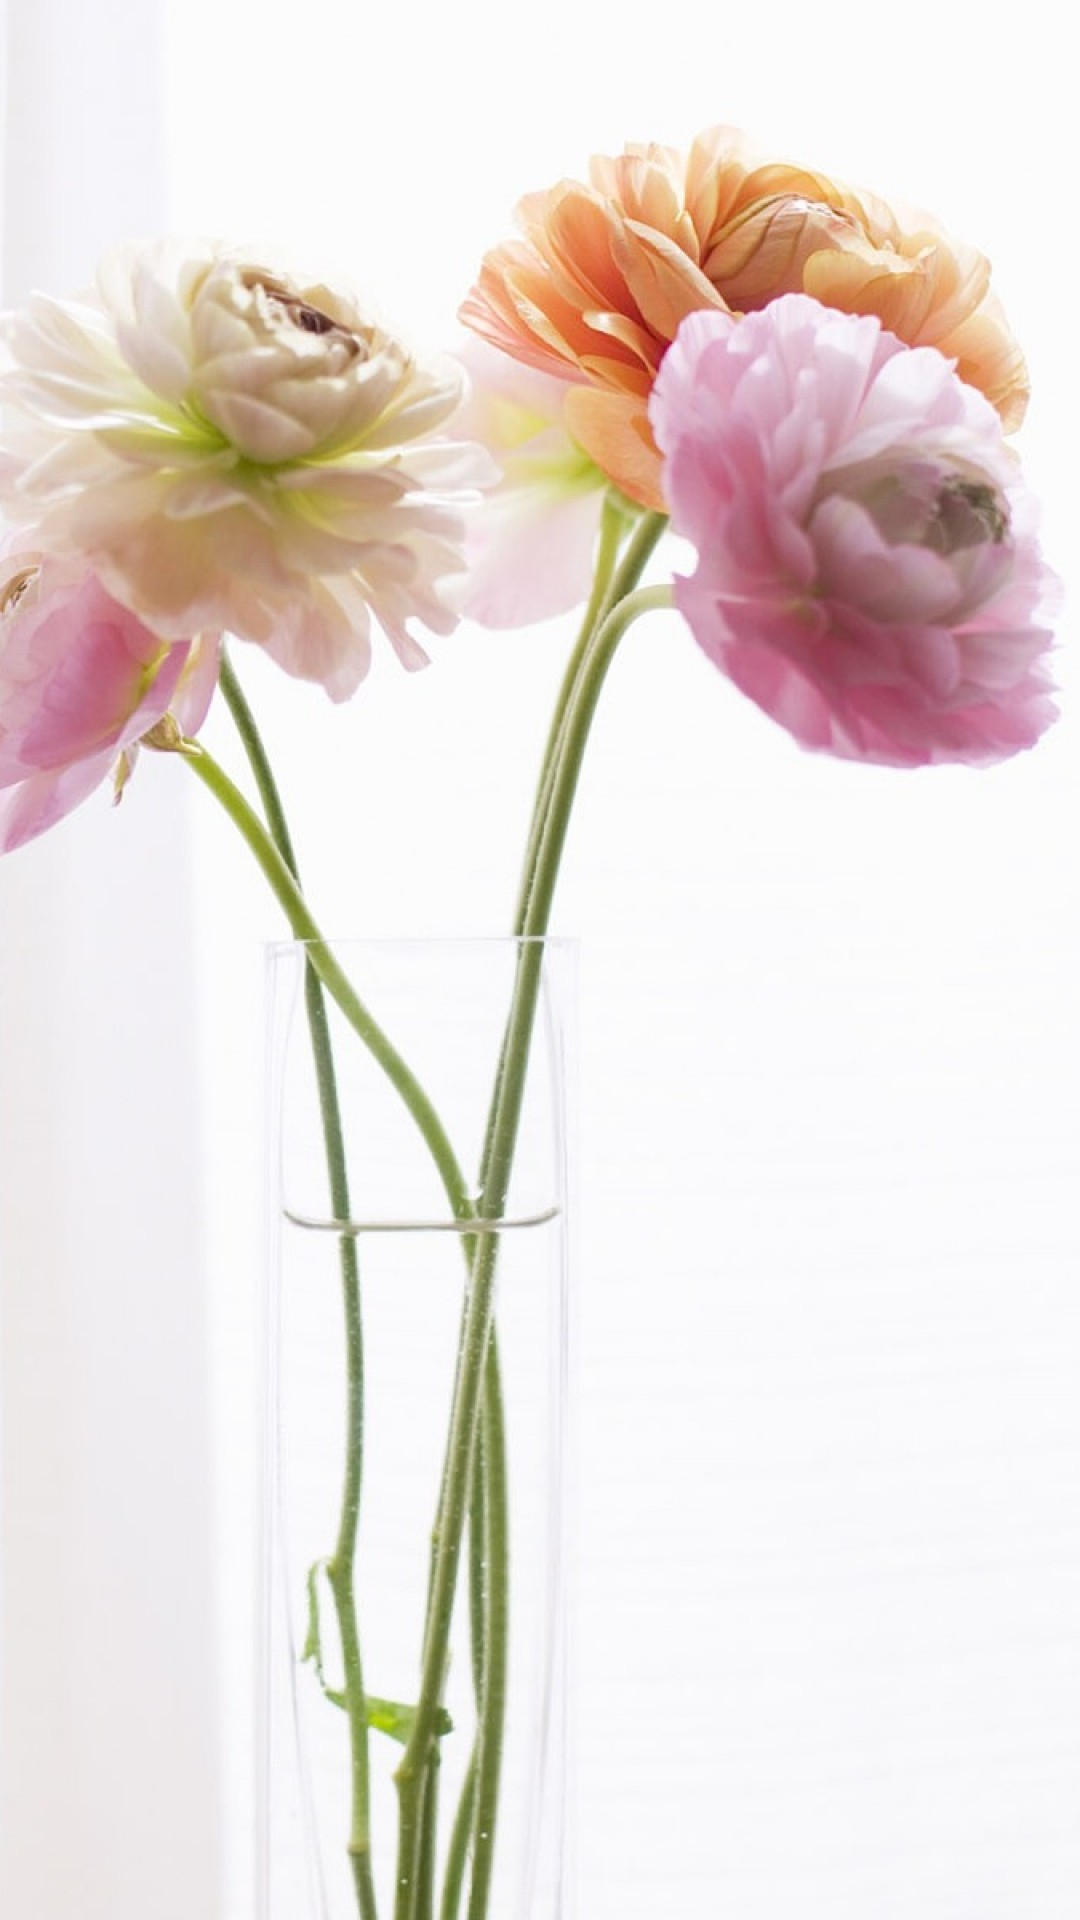 Preview wallpaper peonies, flowers, vase, curtains 1080×1920